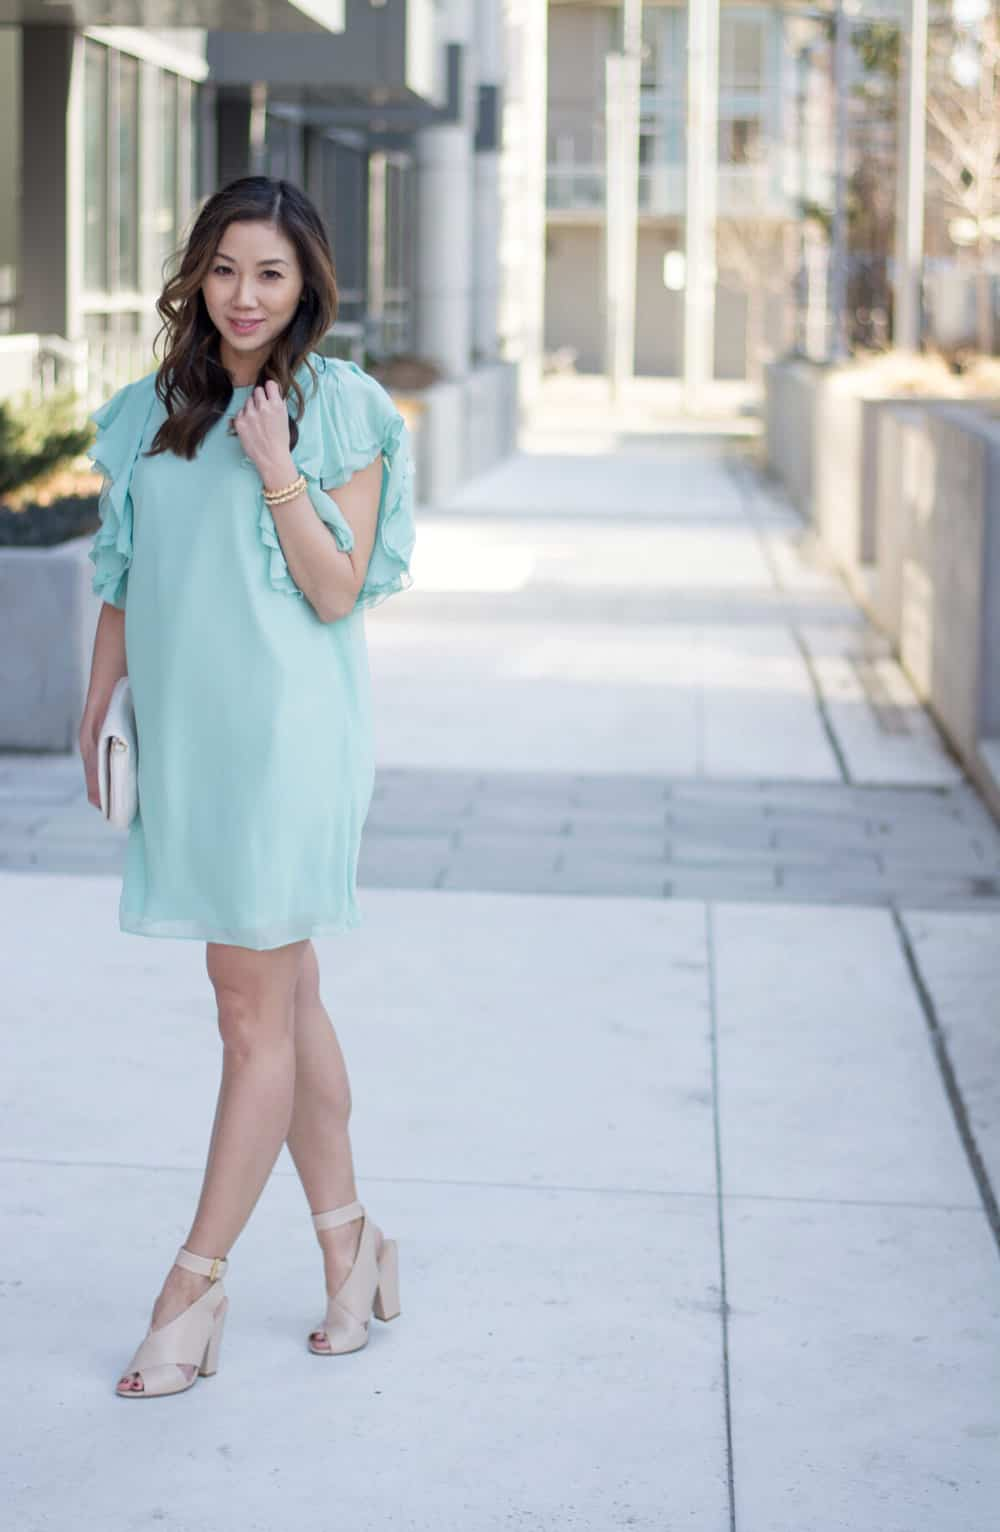 Summer lookbook: chiffon dress and floral bomber from LC Lauren Conrad Dress Up Shop